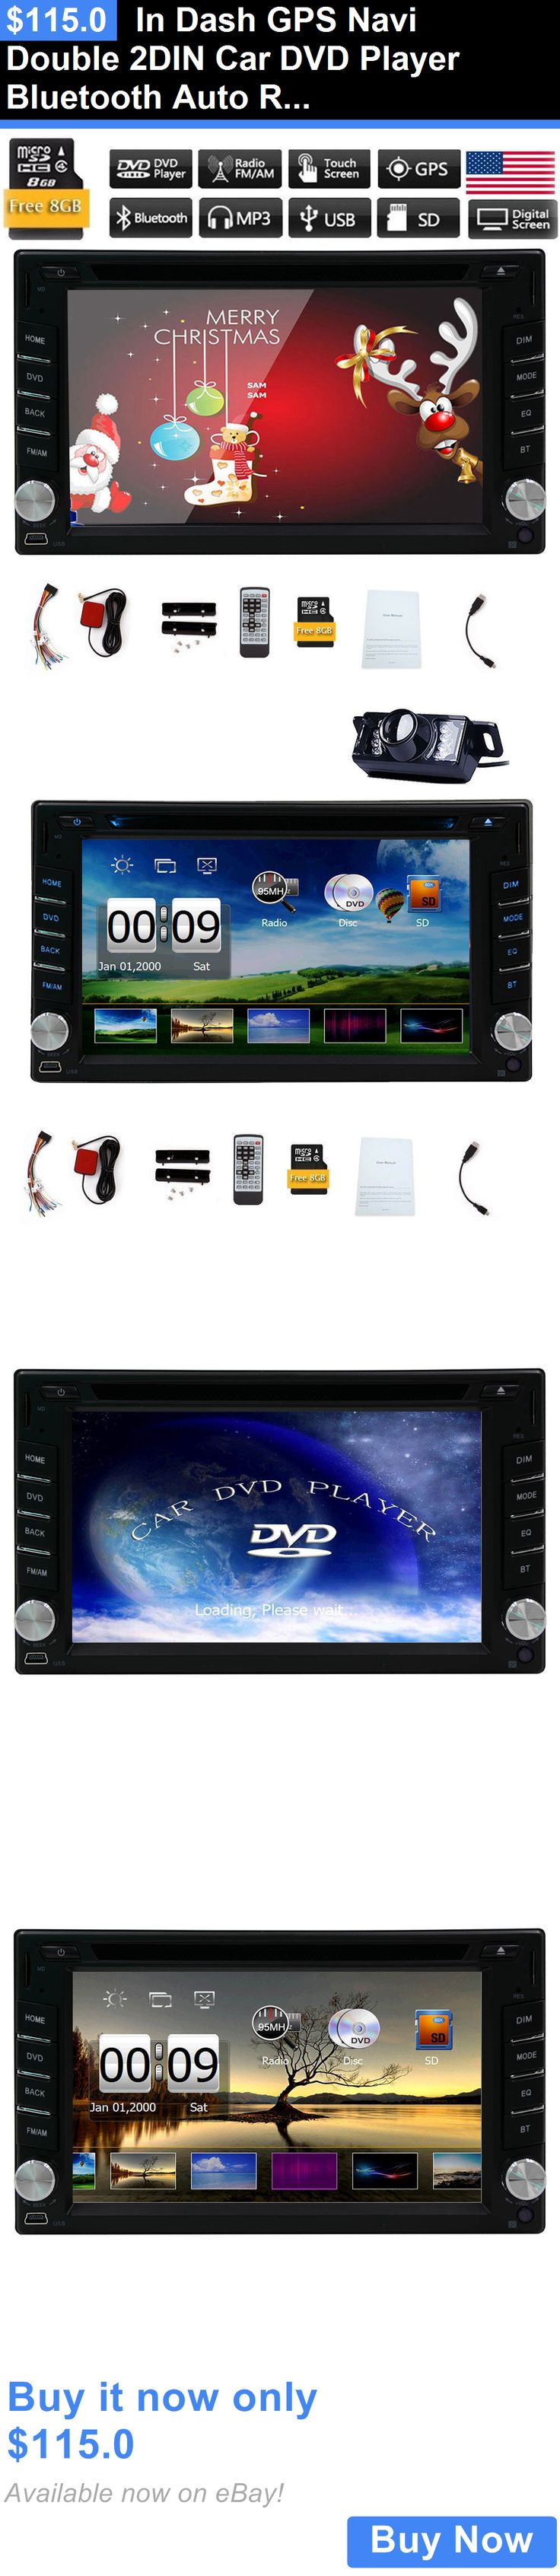 Vehicle Electronics And GPS: In Dash Gps Navi Double 2Din Car Dvd Player Bluetooth Auto Radio Stereo Usb Mp3 BUY IT NOW ONLY: $115.0